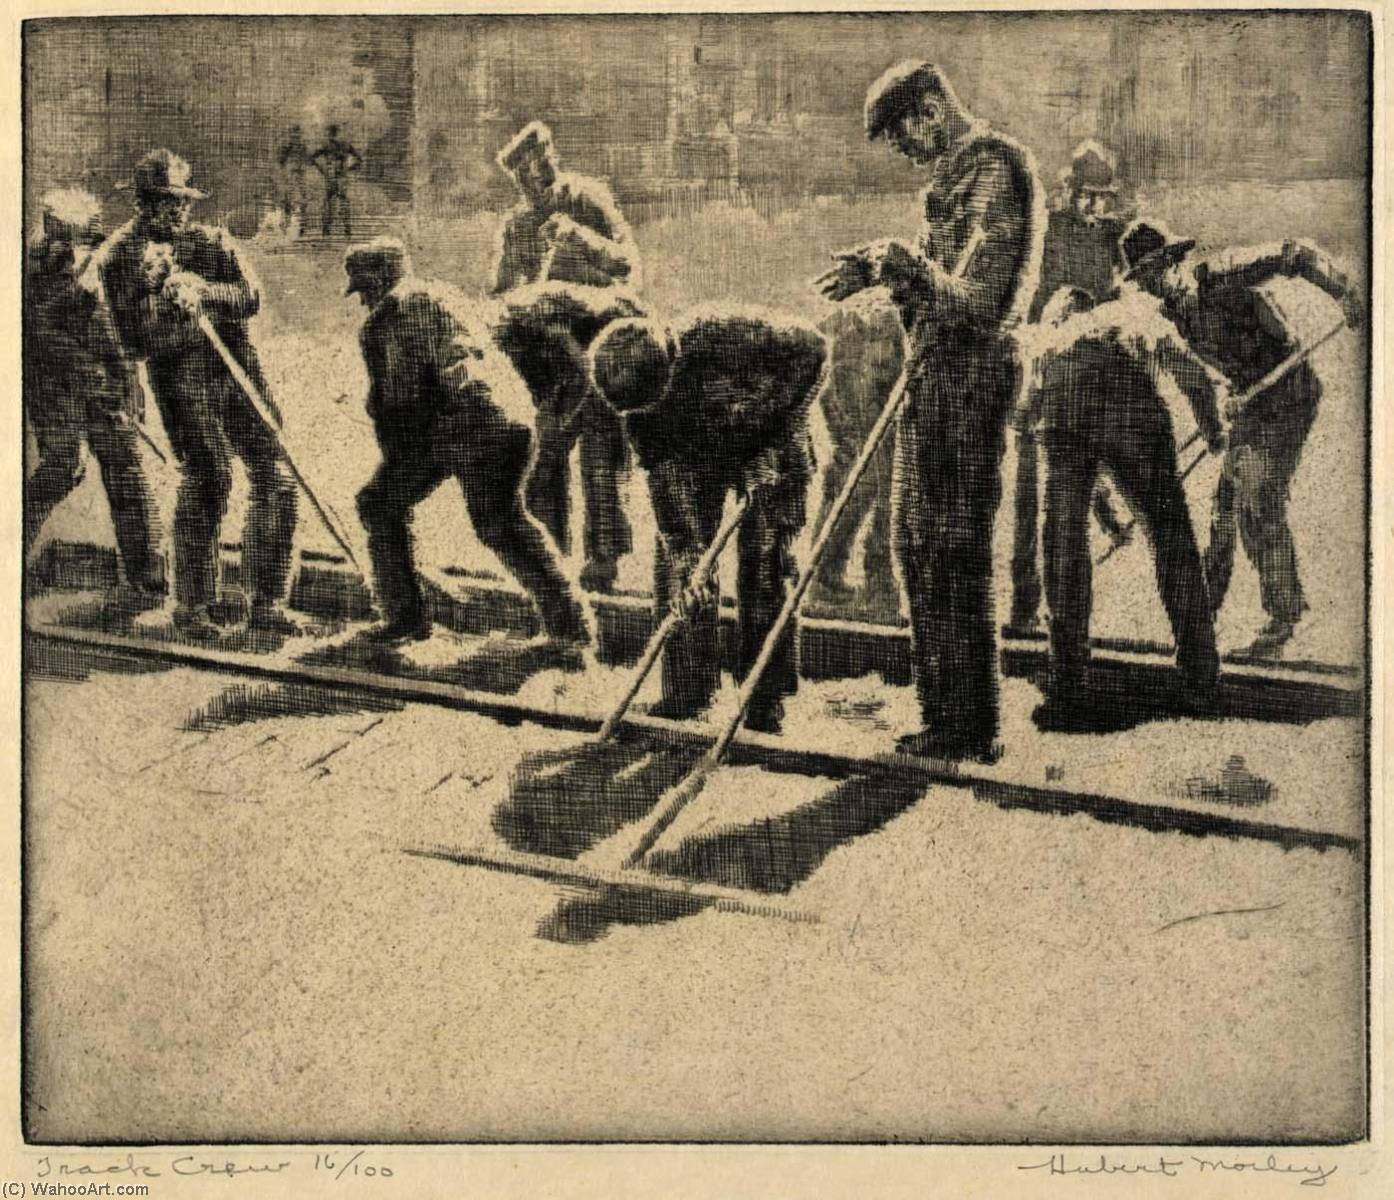 Track Crew, Etching by Hubert Morley